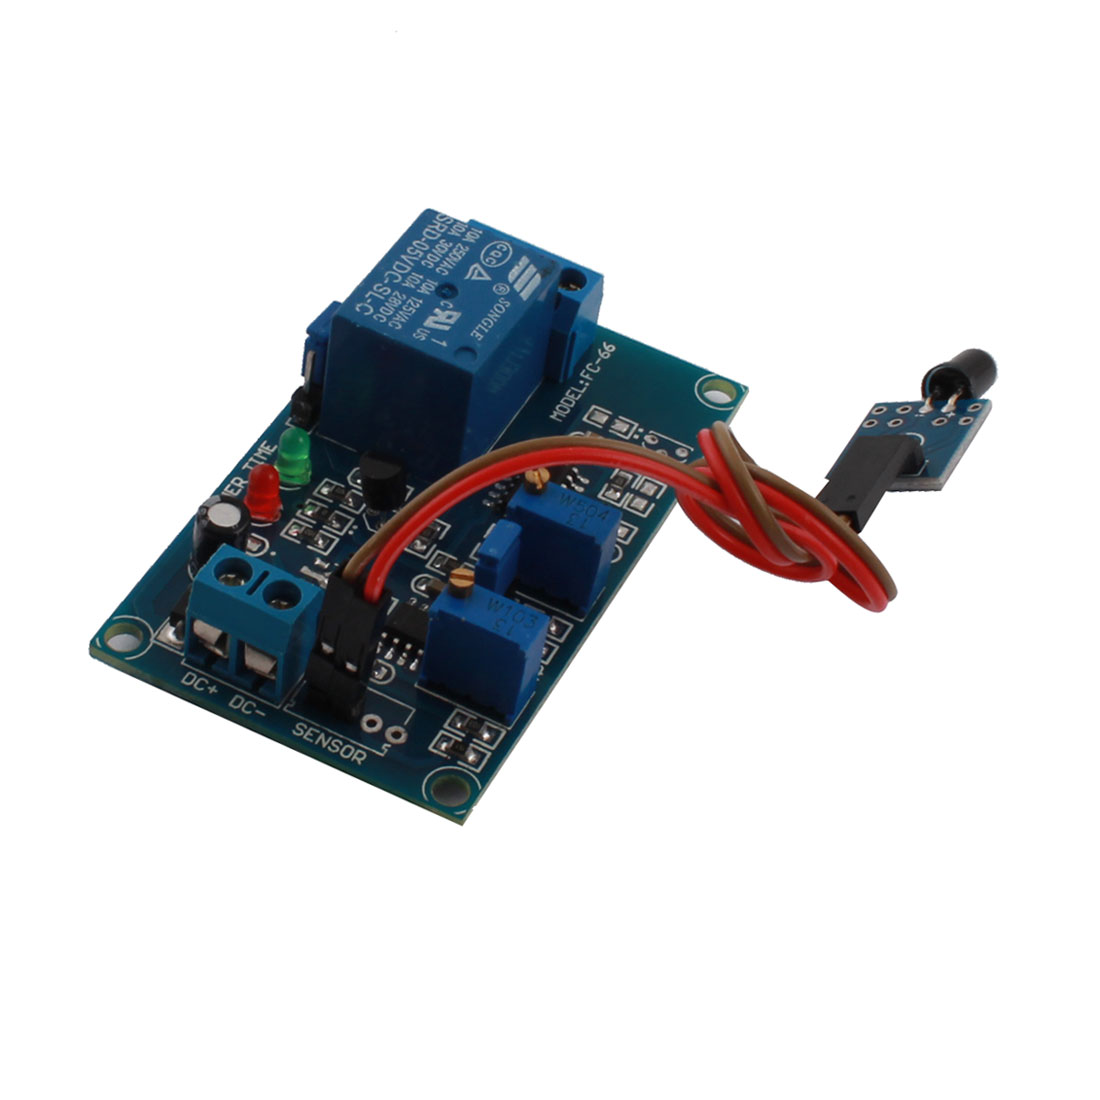 DC5V 1 Channel Flame Sensor Infrared Trigger Reciever Time Delay Relay PCB Board Module